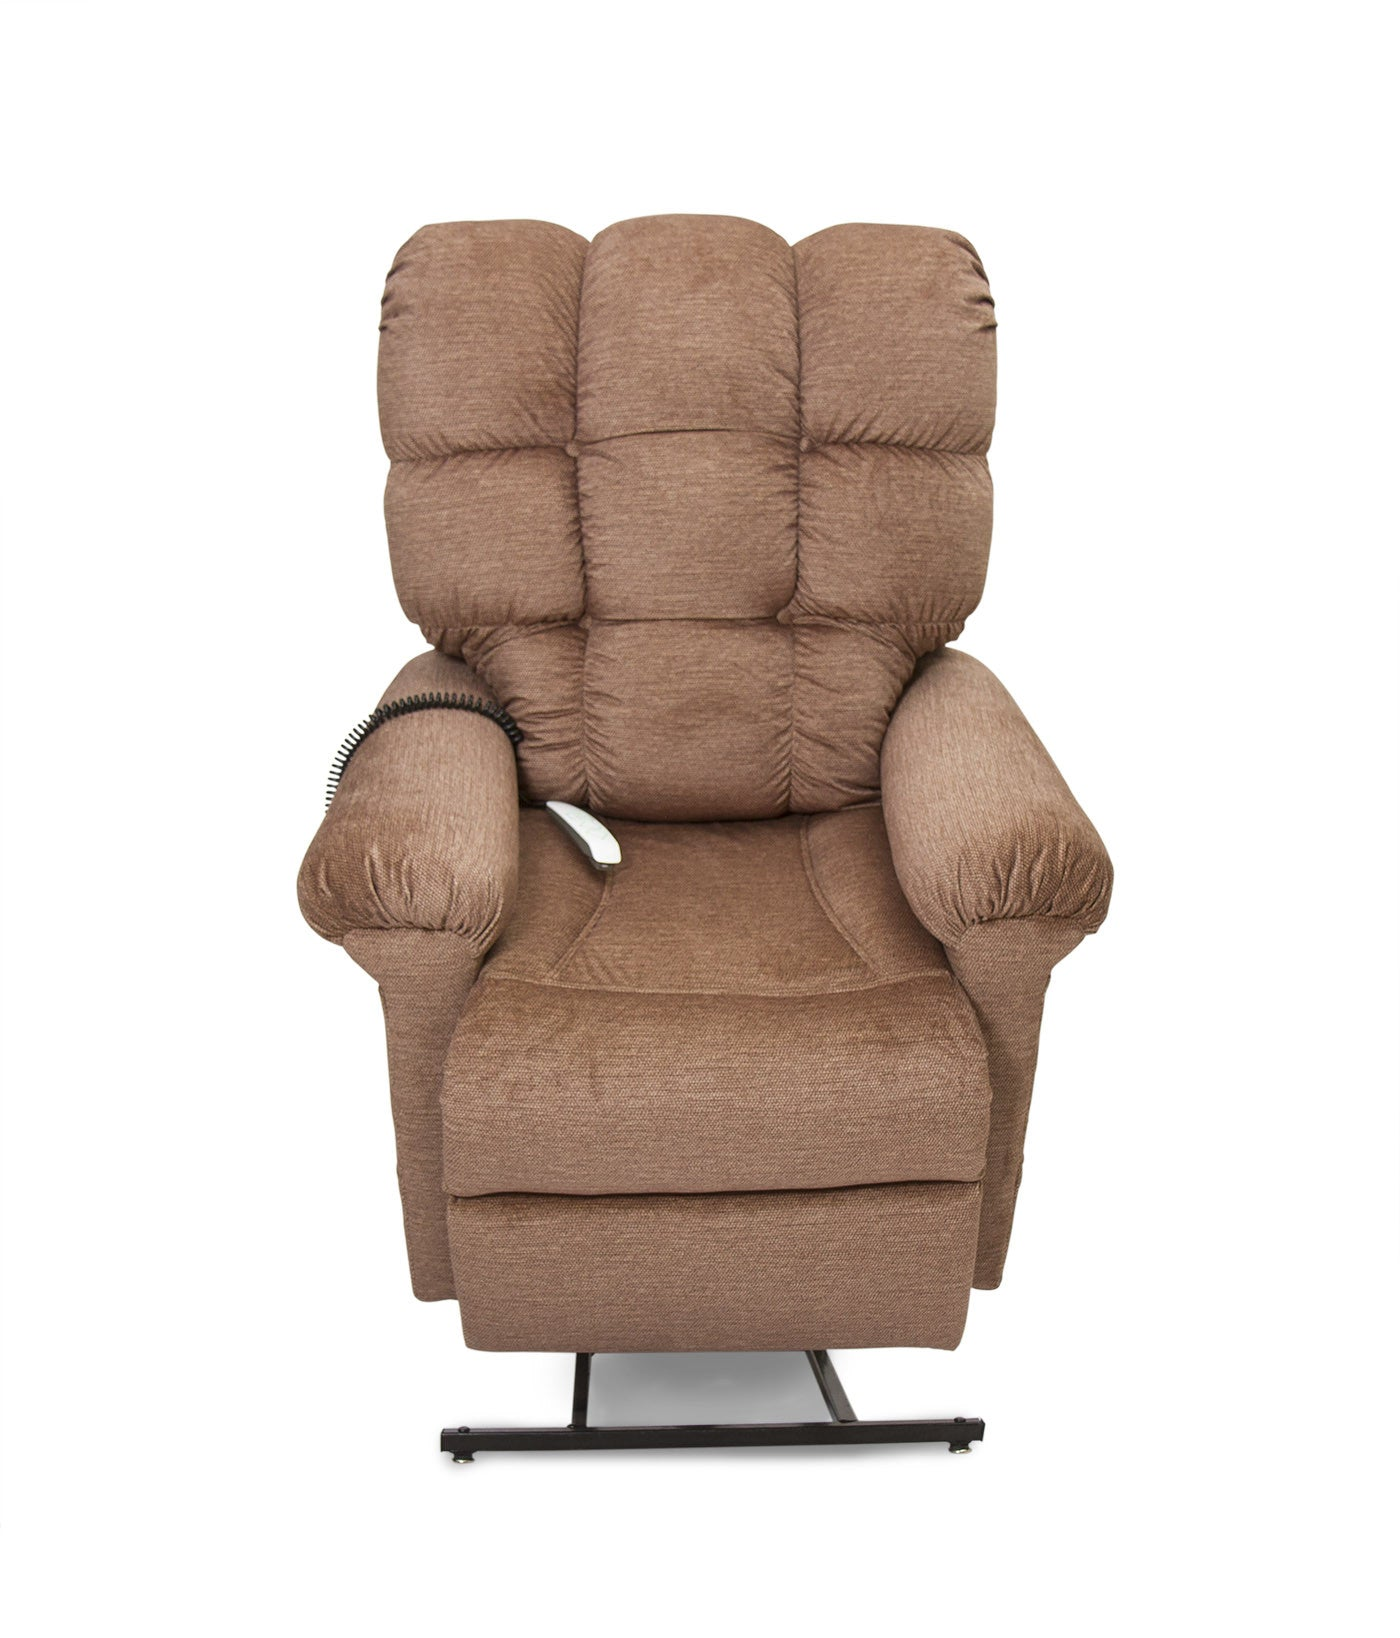 Pride Lift Chair Recliner LC580 Oasis Infinity Multiple Fabrics